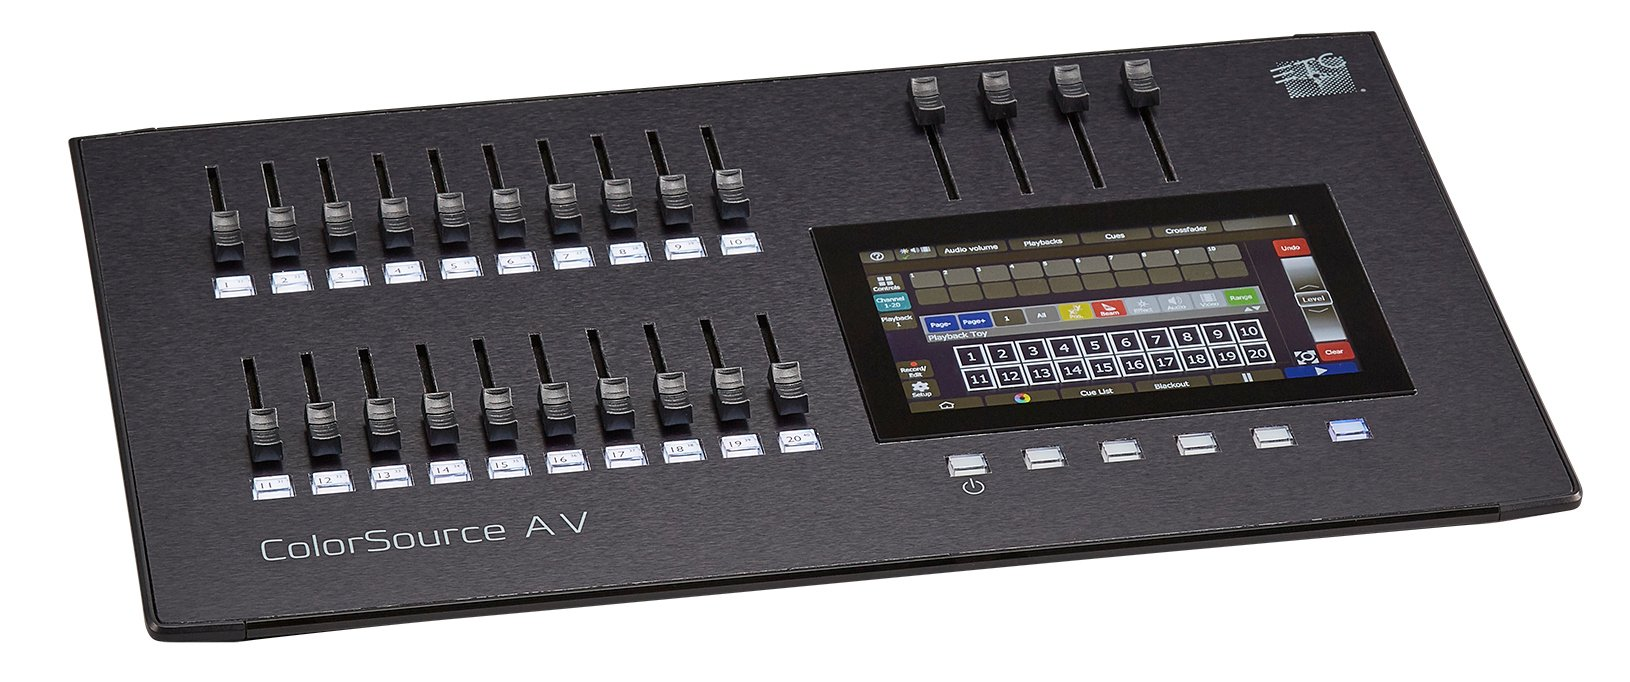 20 Fader Lighting Console with HDMI, Network, and Audio Features